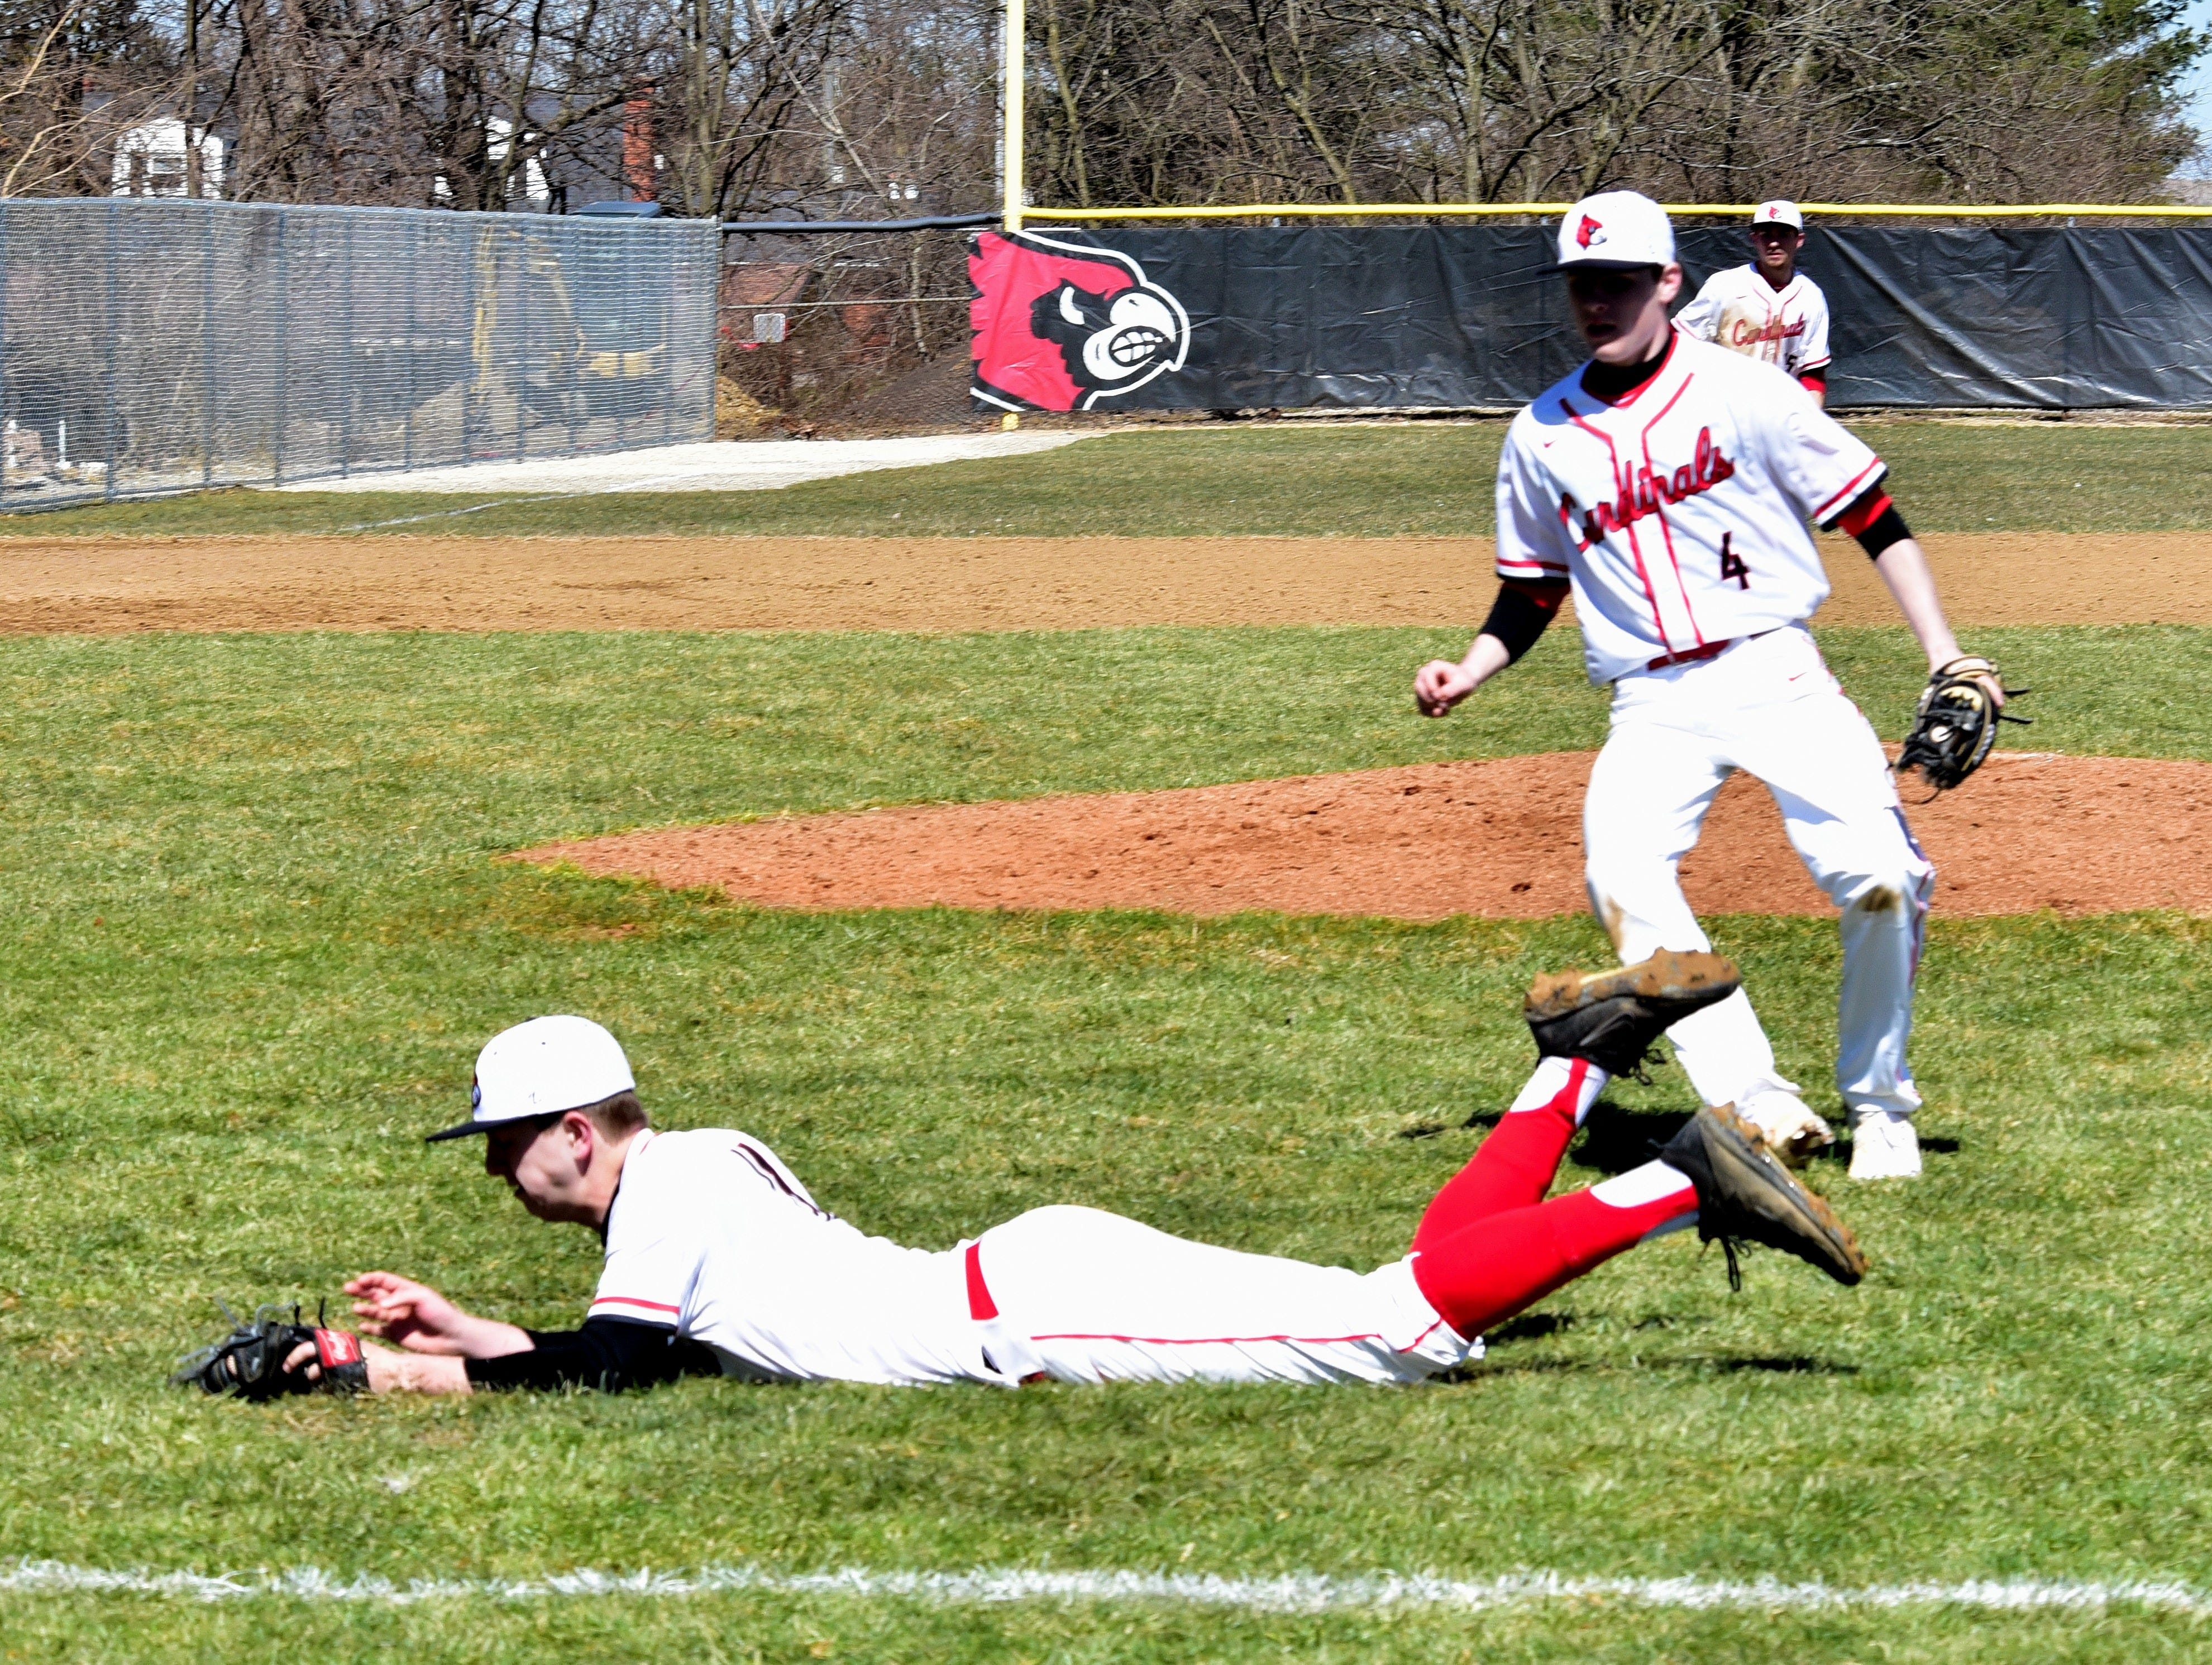 Cameron Foster of Colerain hits the ground but keeps the ball secured in his glove to put out a Springboro player on a bunt attempt turned pop-up at Colerain High School, March 23, 2019.